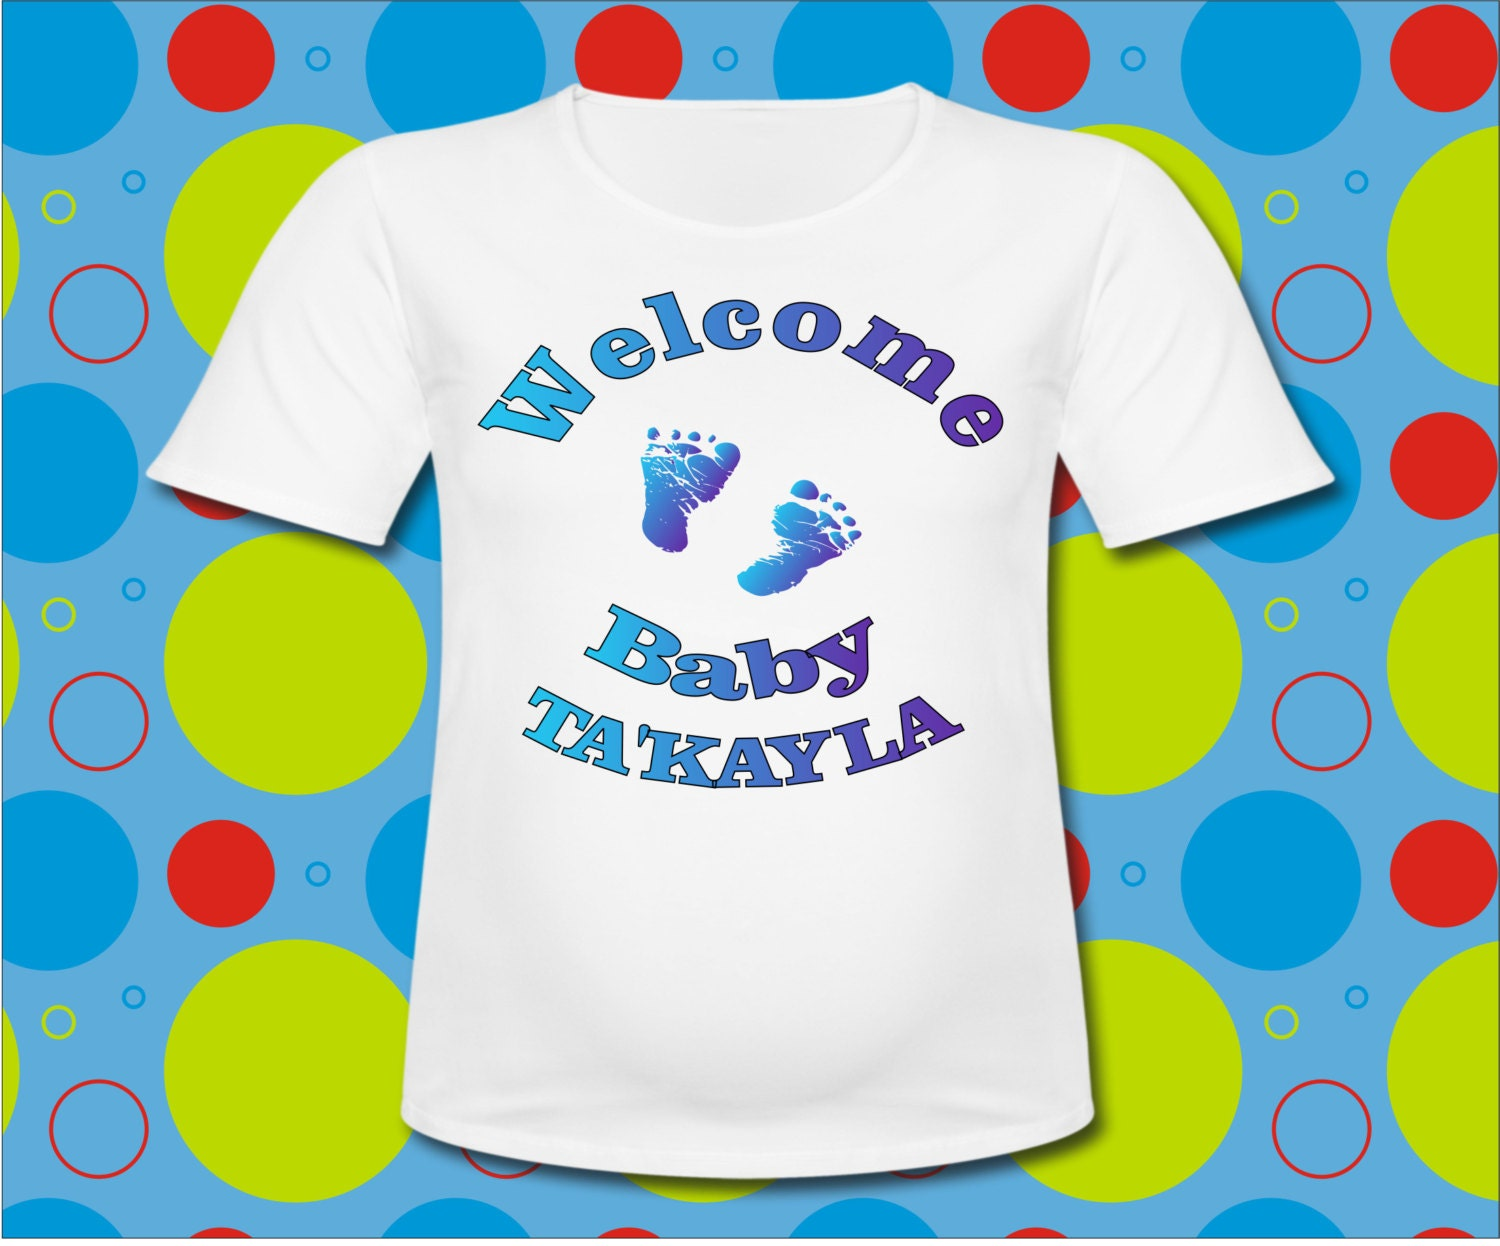 Personalized Baby Shower T Shirt With Baby Feet All Sizes Or